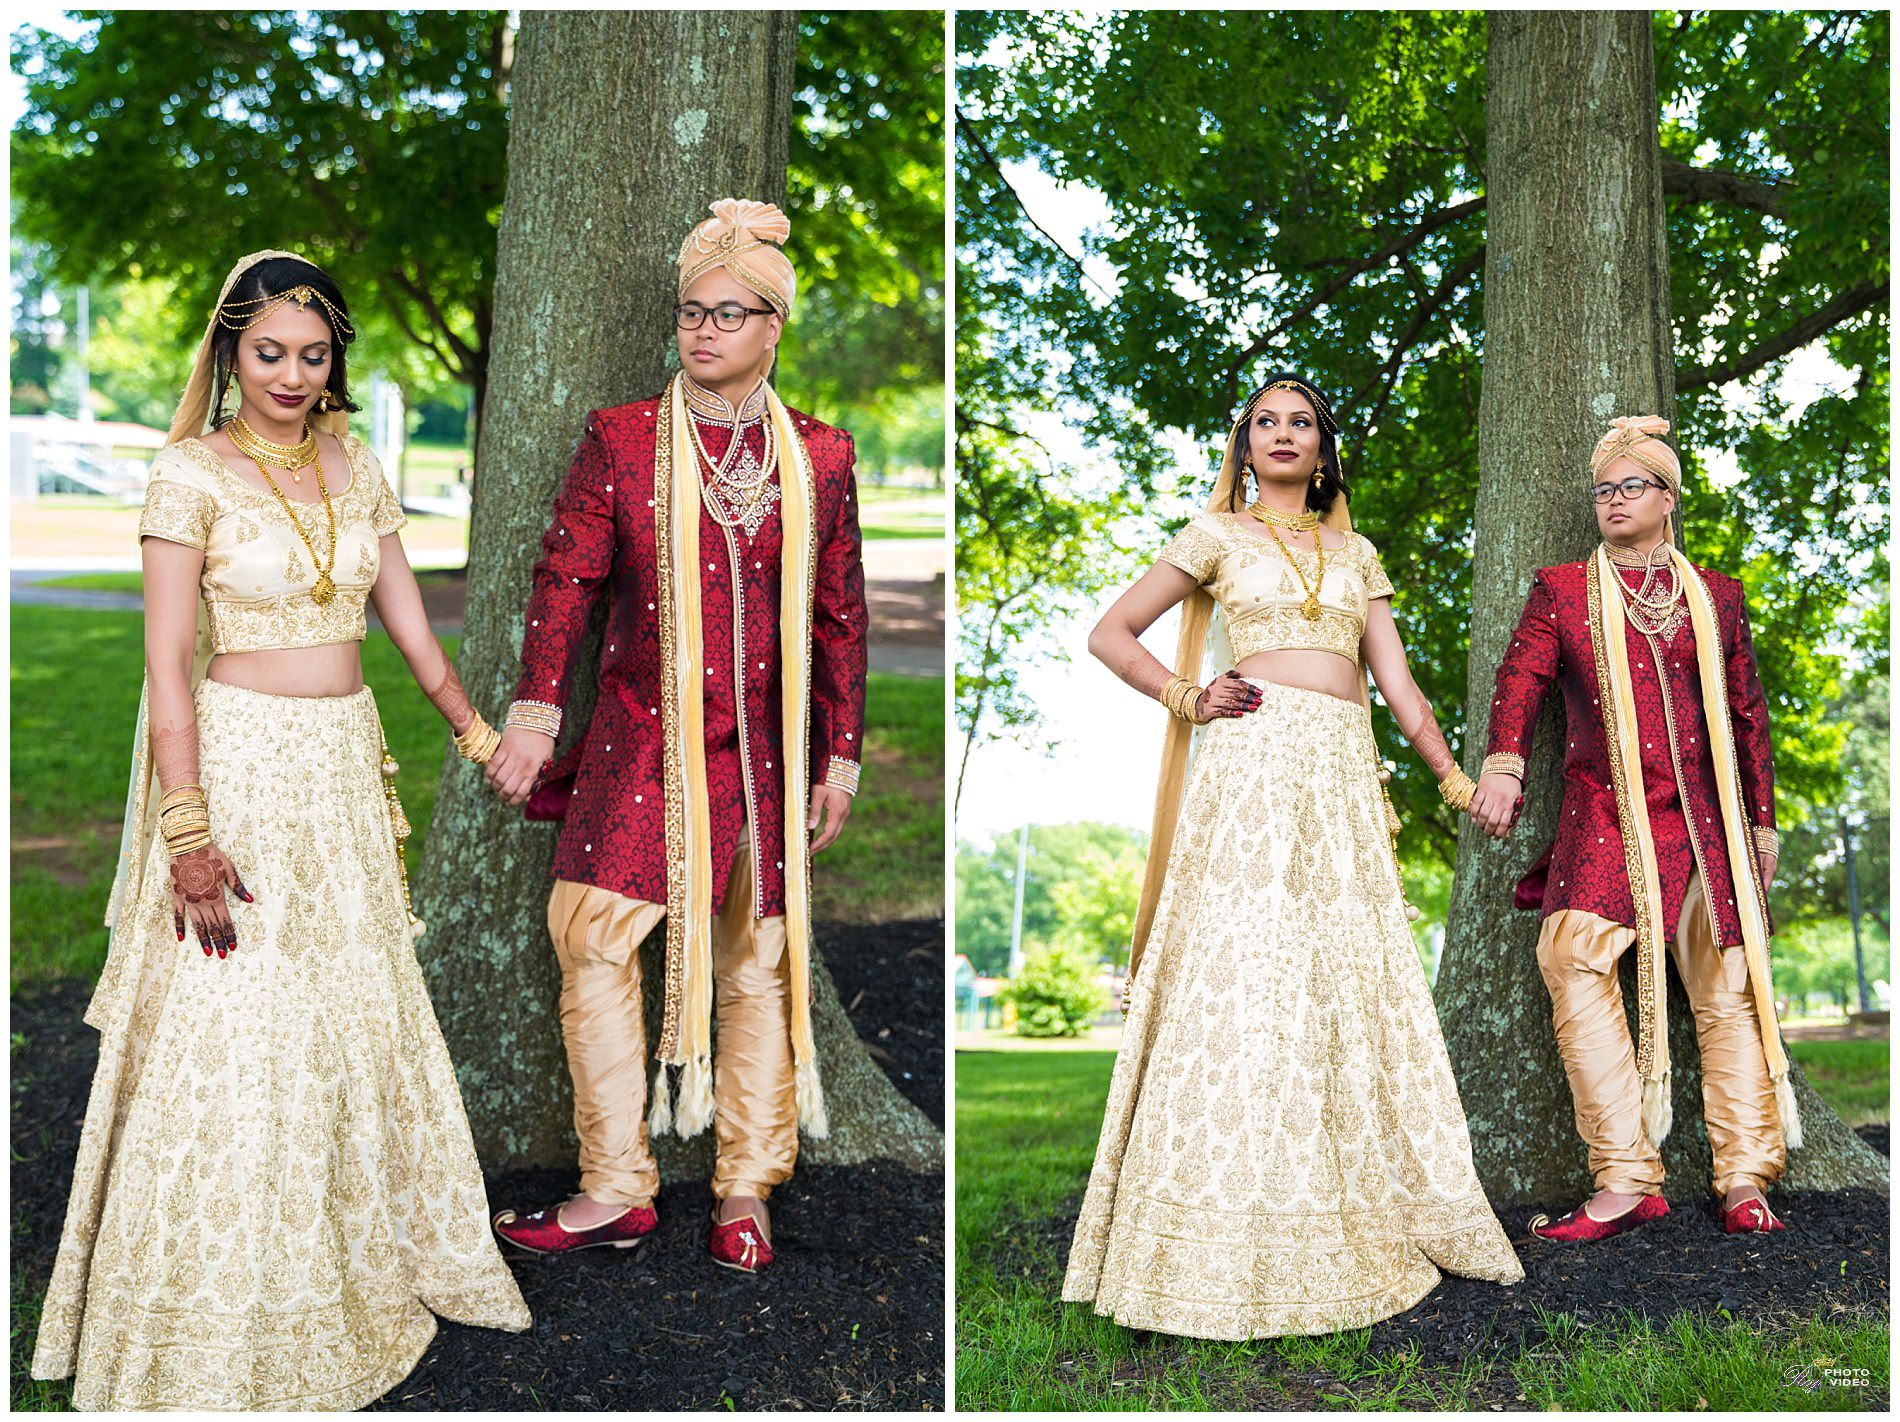 Roosevelt-Park-Bride-Groom-Portrait-Shoot-Khusbu-Jeff-16.jpg